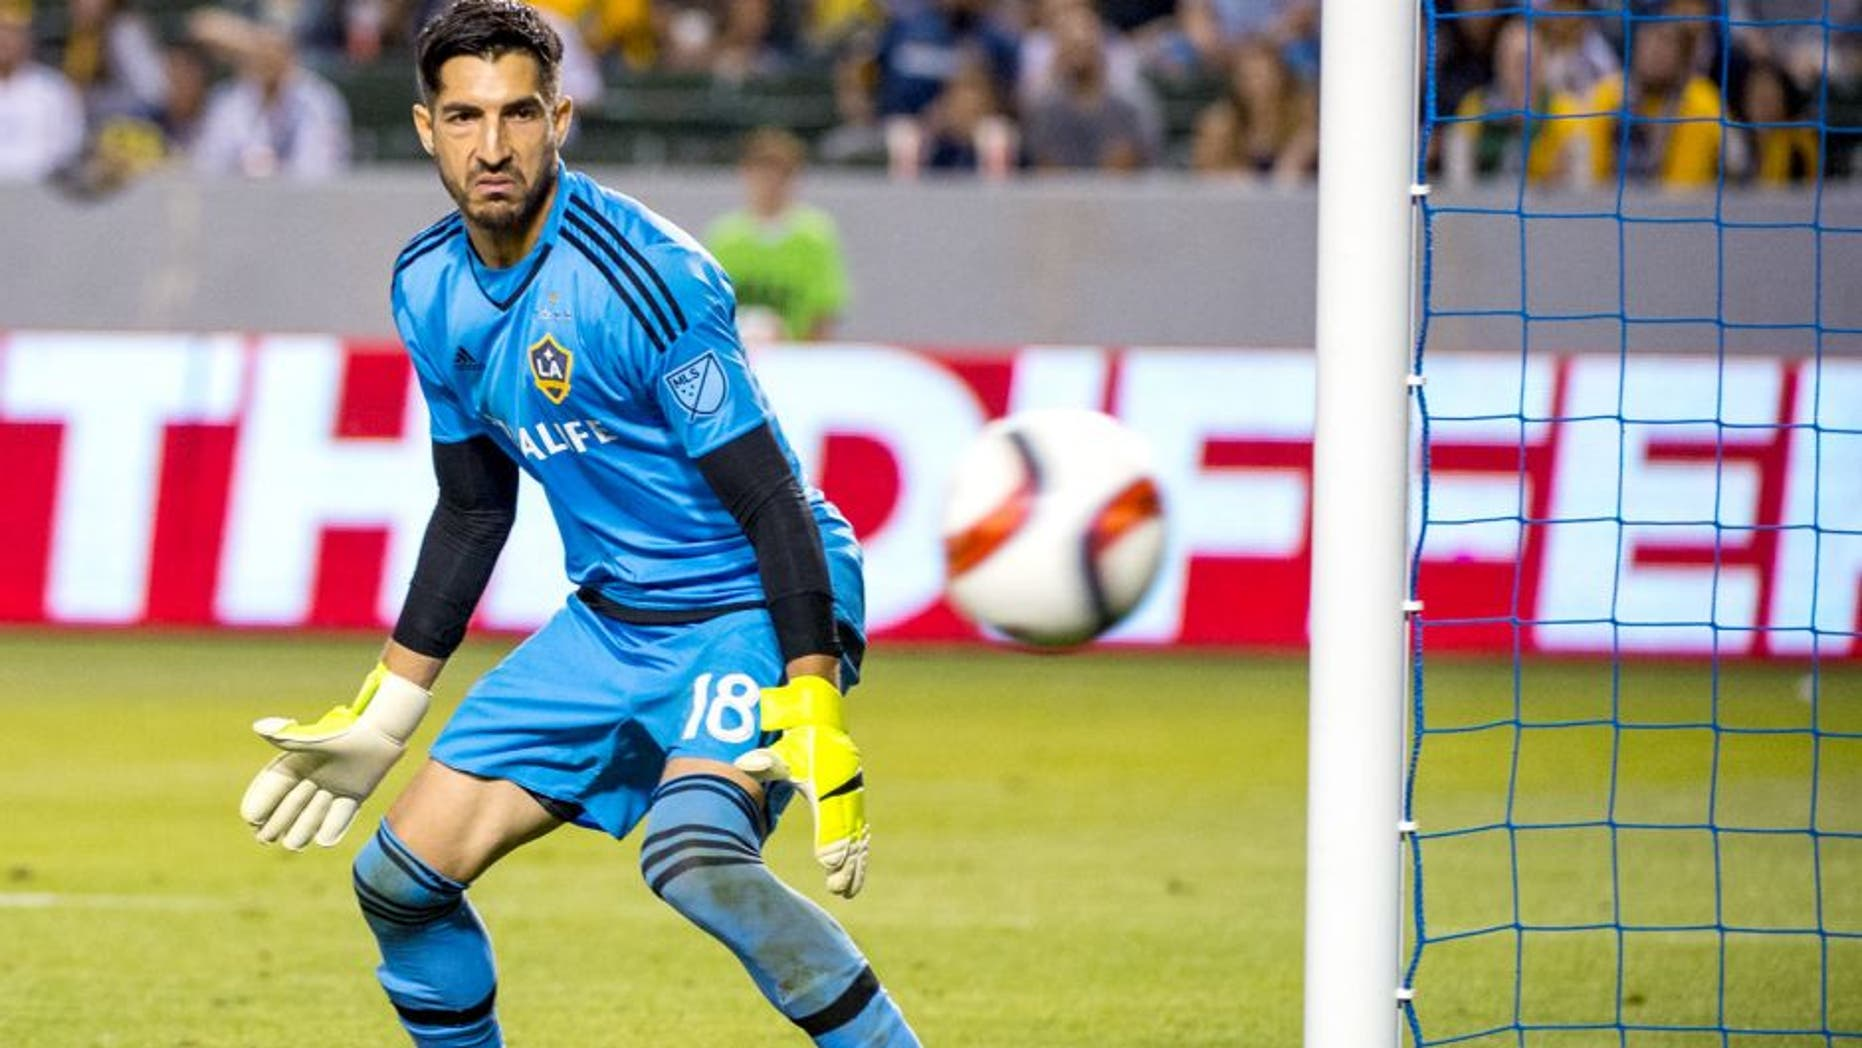 CARSON, CA - JUNE 24: Jaime Penedo (18) of Los Angeles Galaxy watches a shot fly safely by during Los Angeles Galaxy's MLS match against Portland Timbers at the StubHub Center on June 24, 2015 in Carson, California. The LA Galaxy won the match 5-0 (Photo: Shaun Clark/Getty Images)